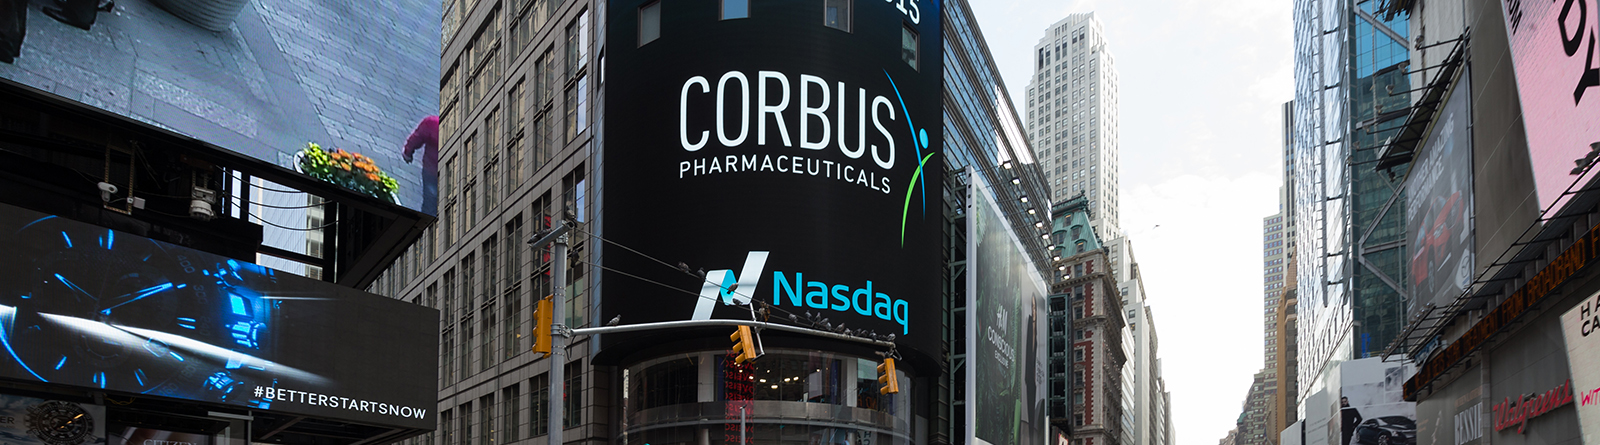 Corbus Pharmaceuticals Appoints George Golumbeski, Ph.D., to Board of Directors Banner